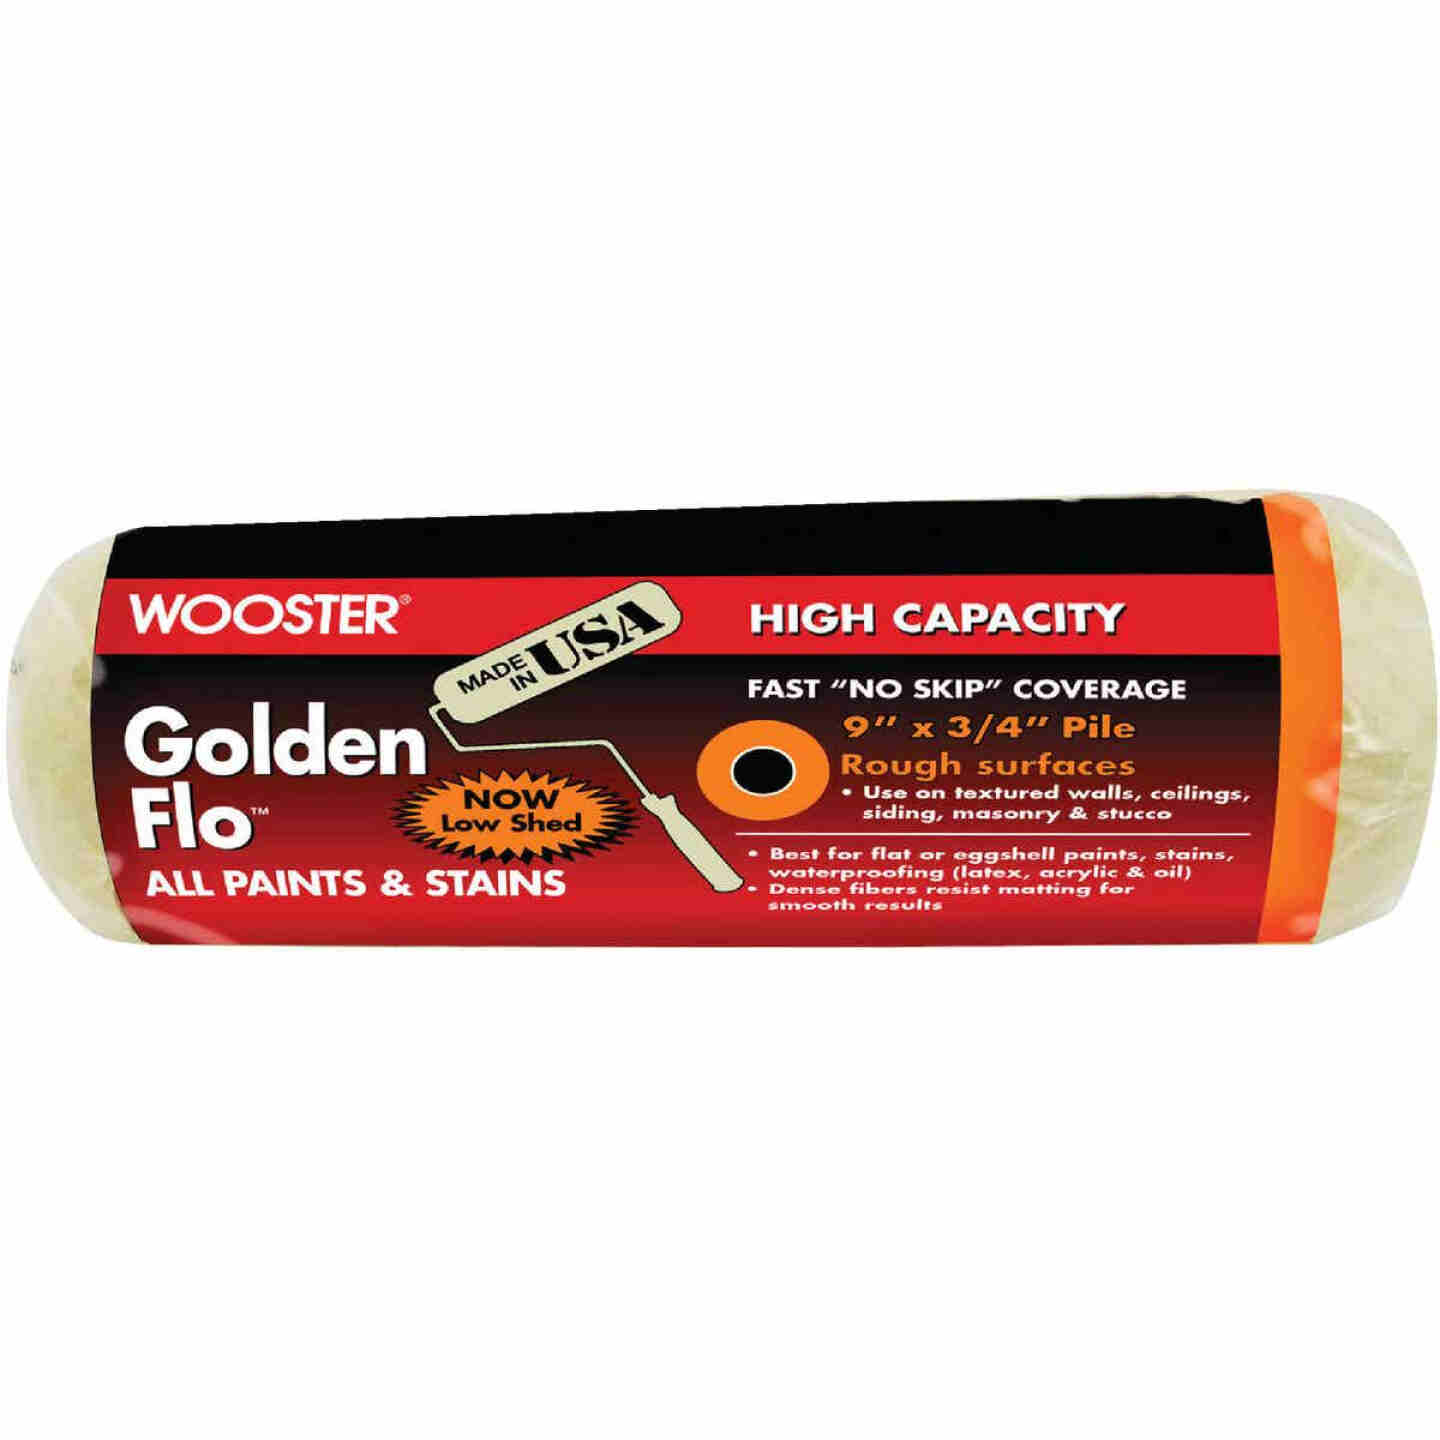 Wooster Golden Flo 9 In. x 3/4 In. Knit Fabric Roller Cover Image 1